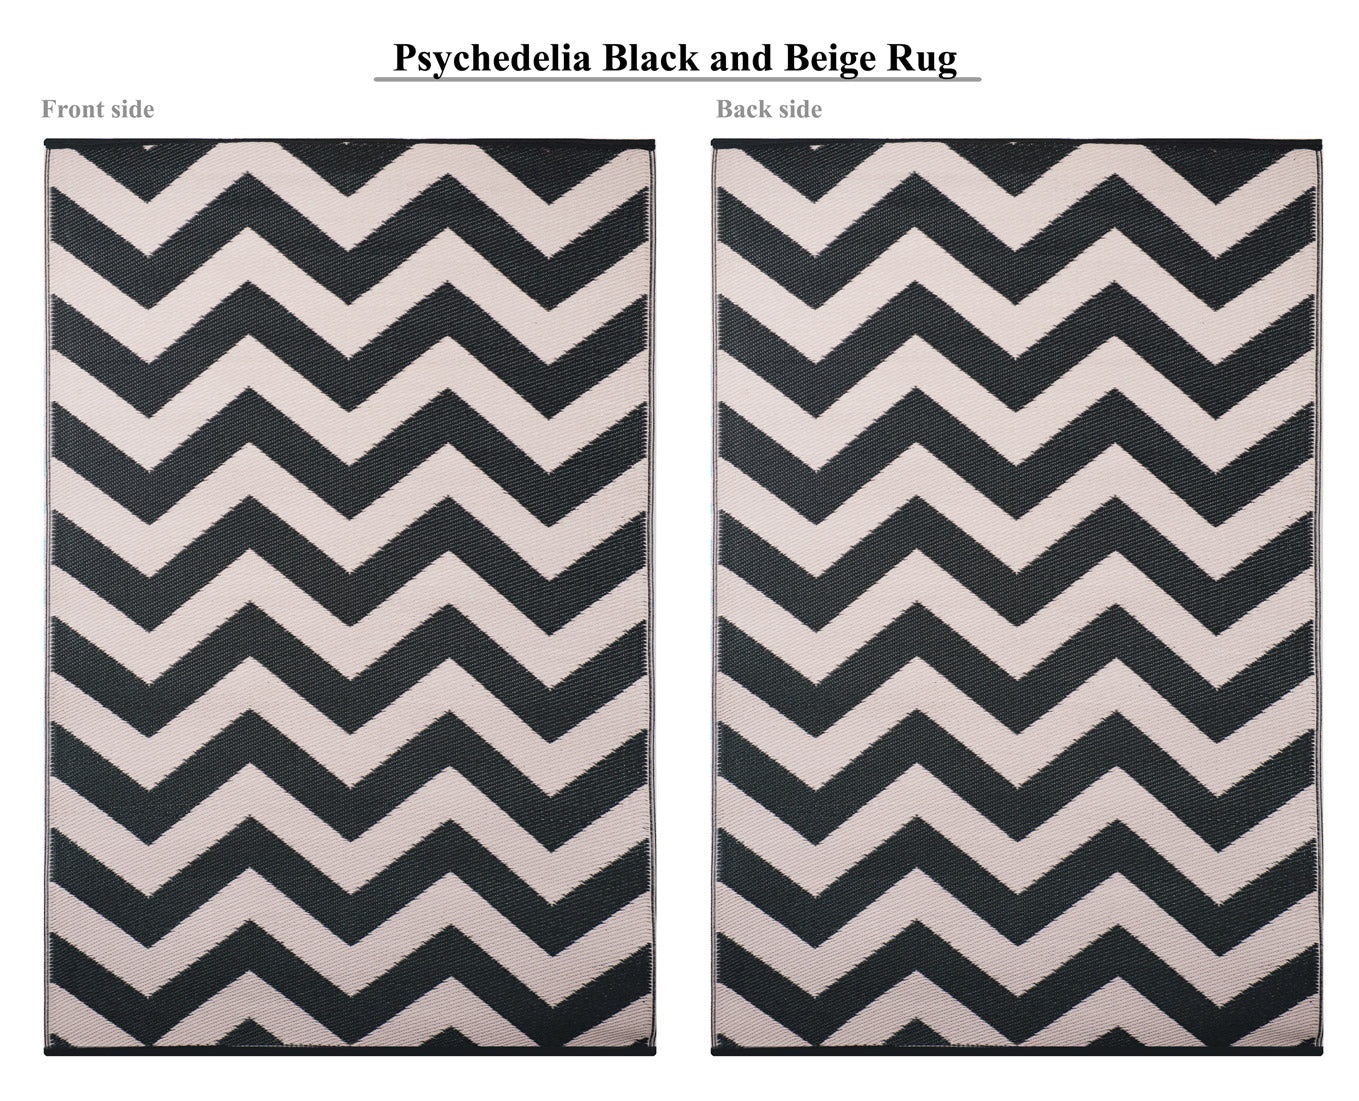 Psychedelia Outdoor Recycled Plastic Rug (Black/Beige)